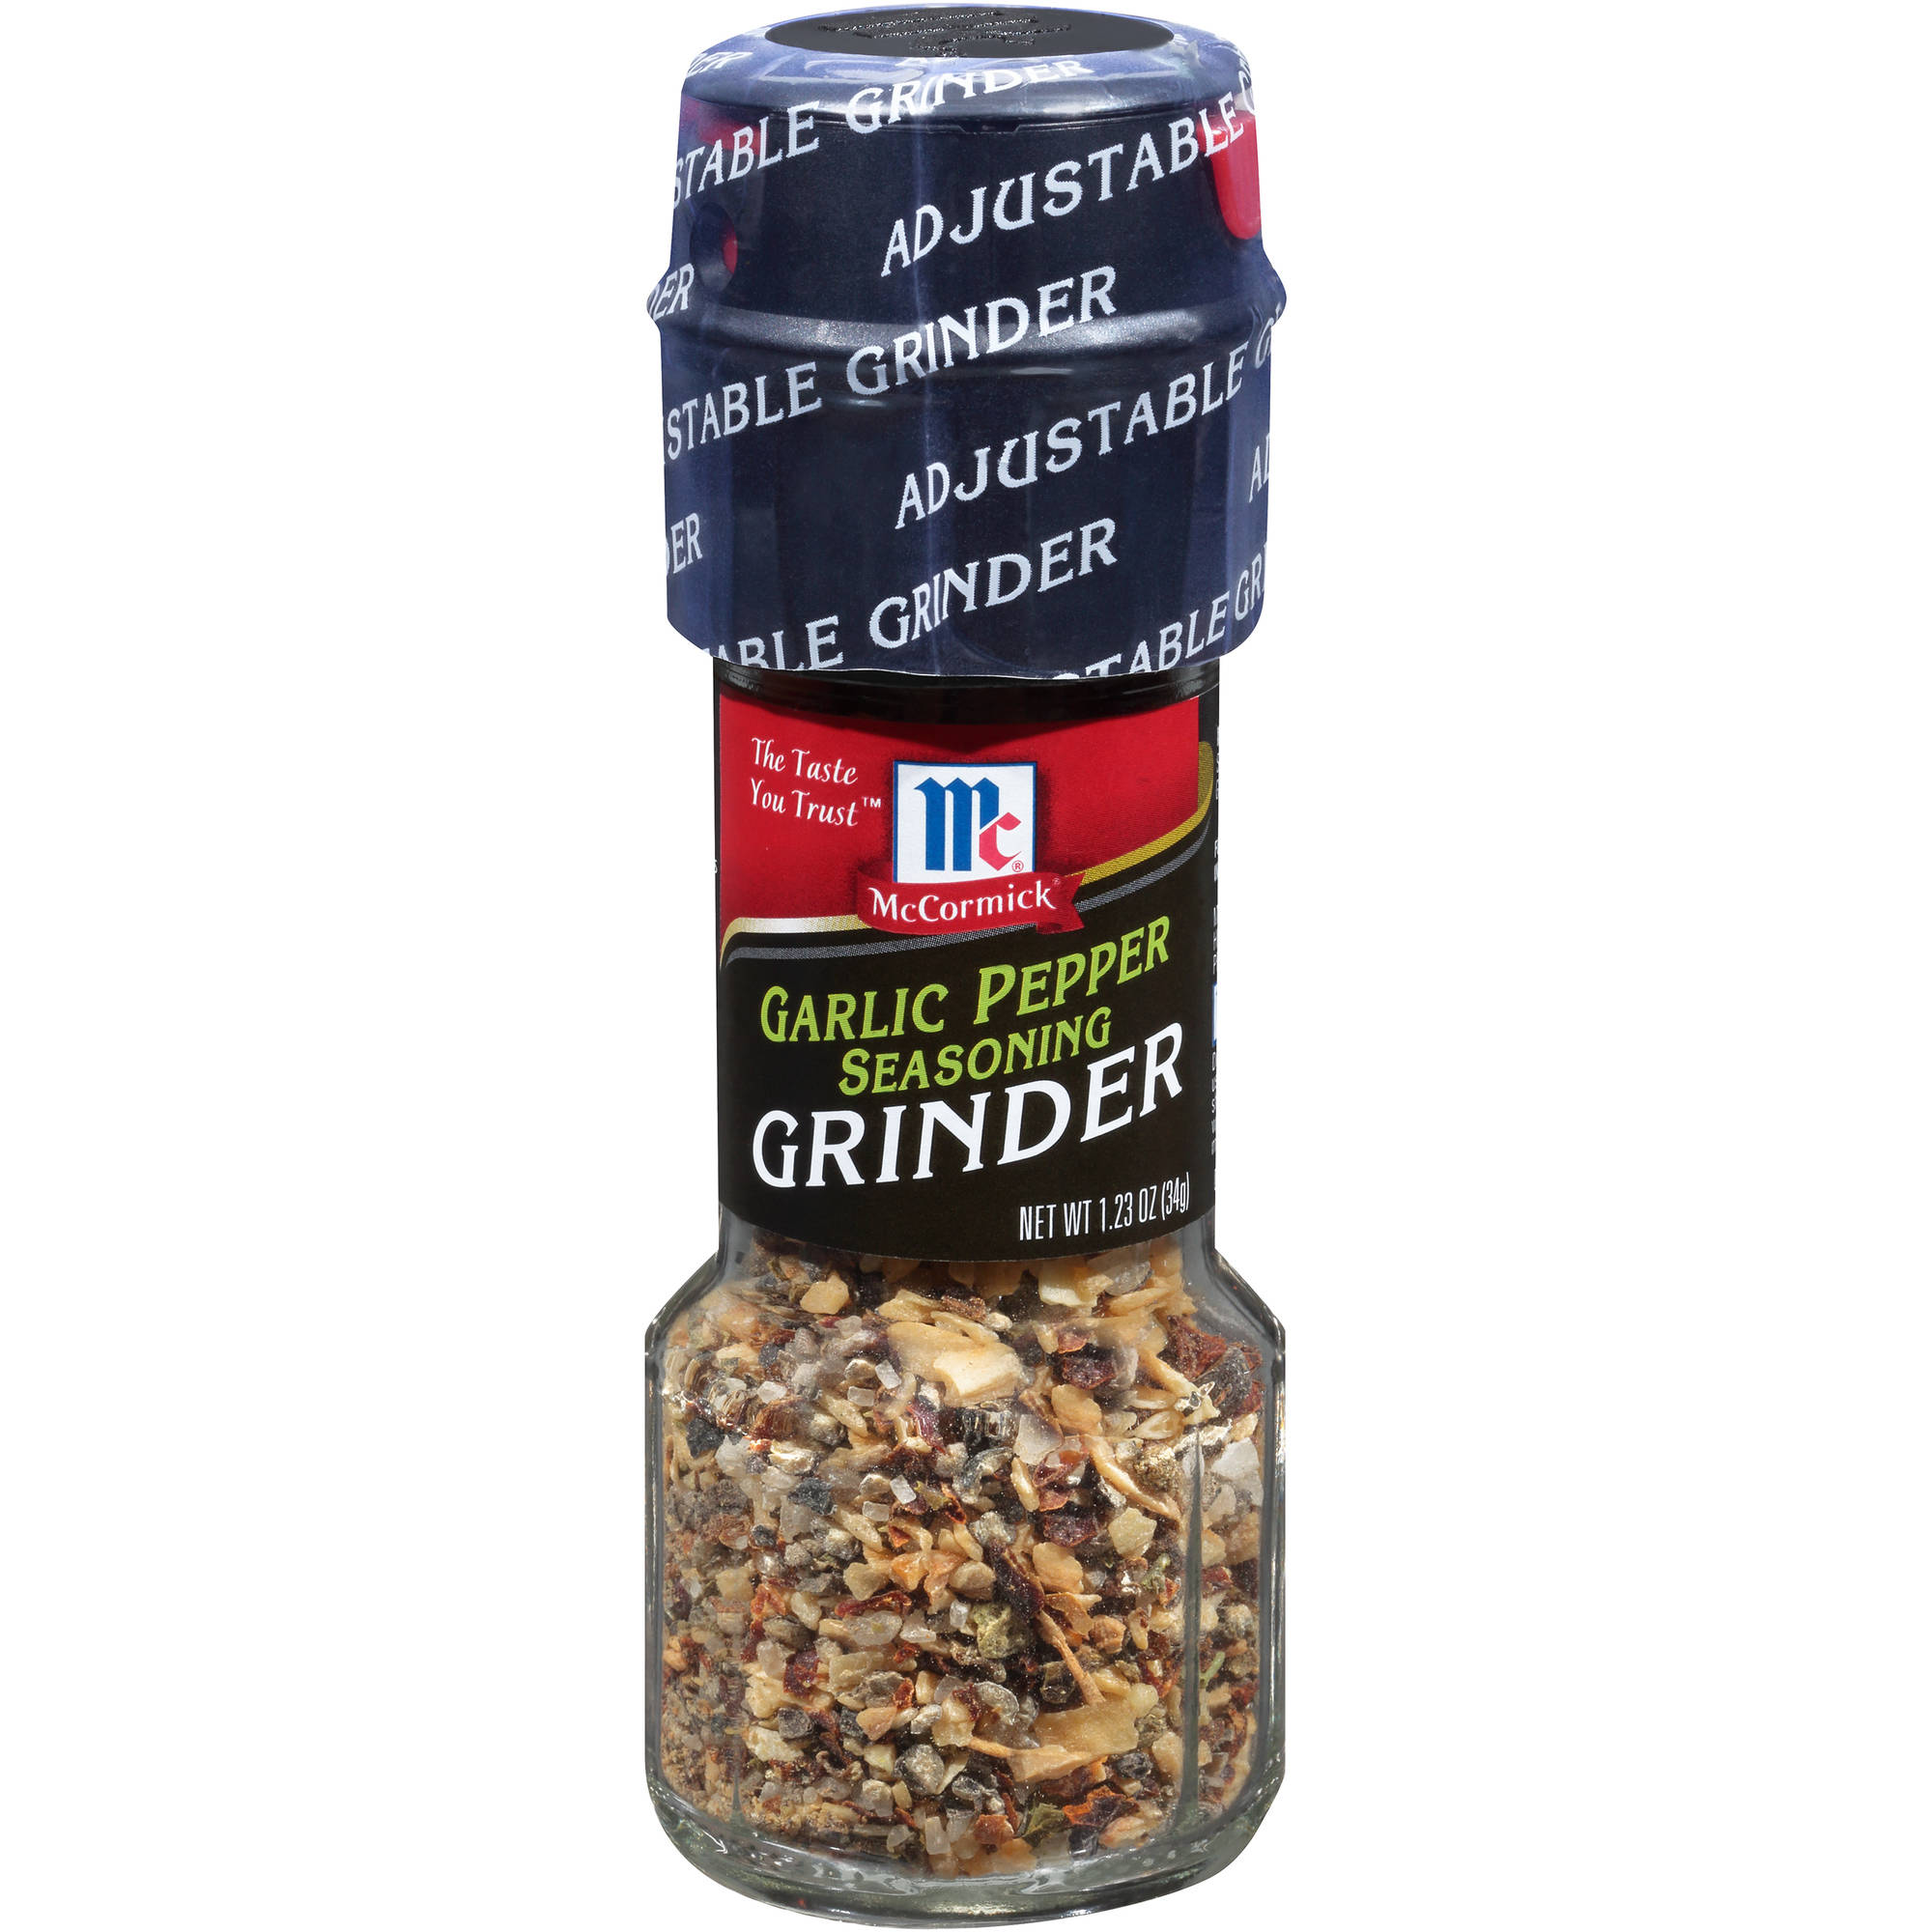 McCormick Garlic Pepper Seasoning Grinder, 1.23 oz